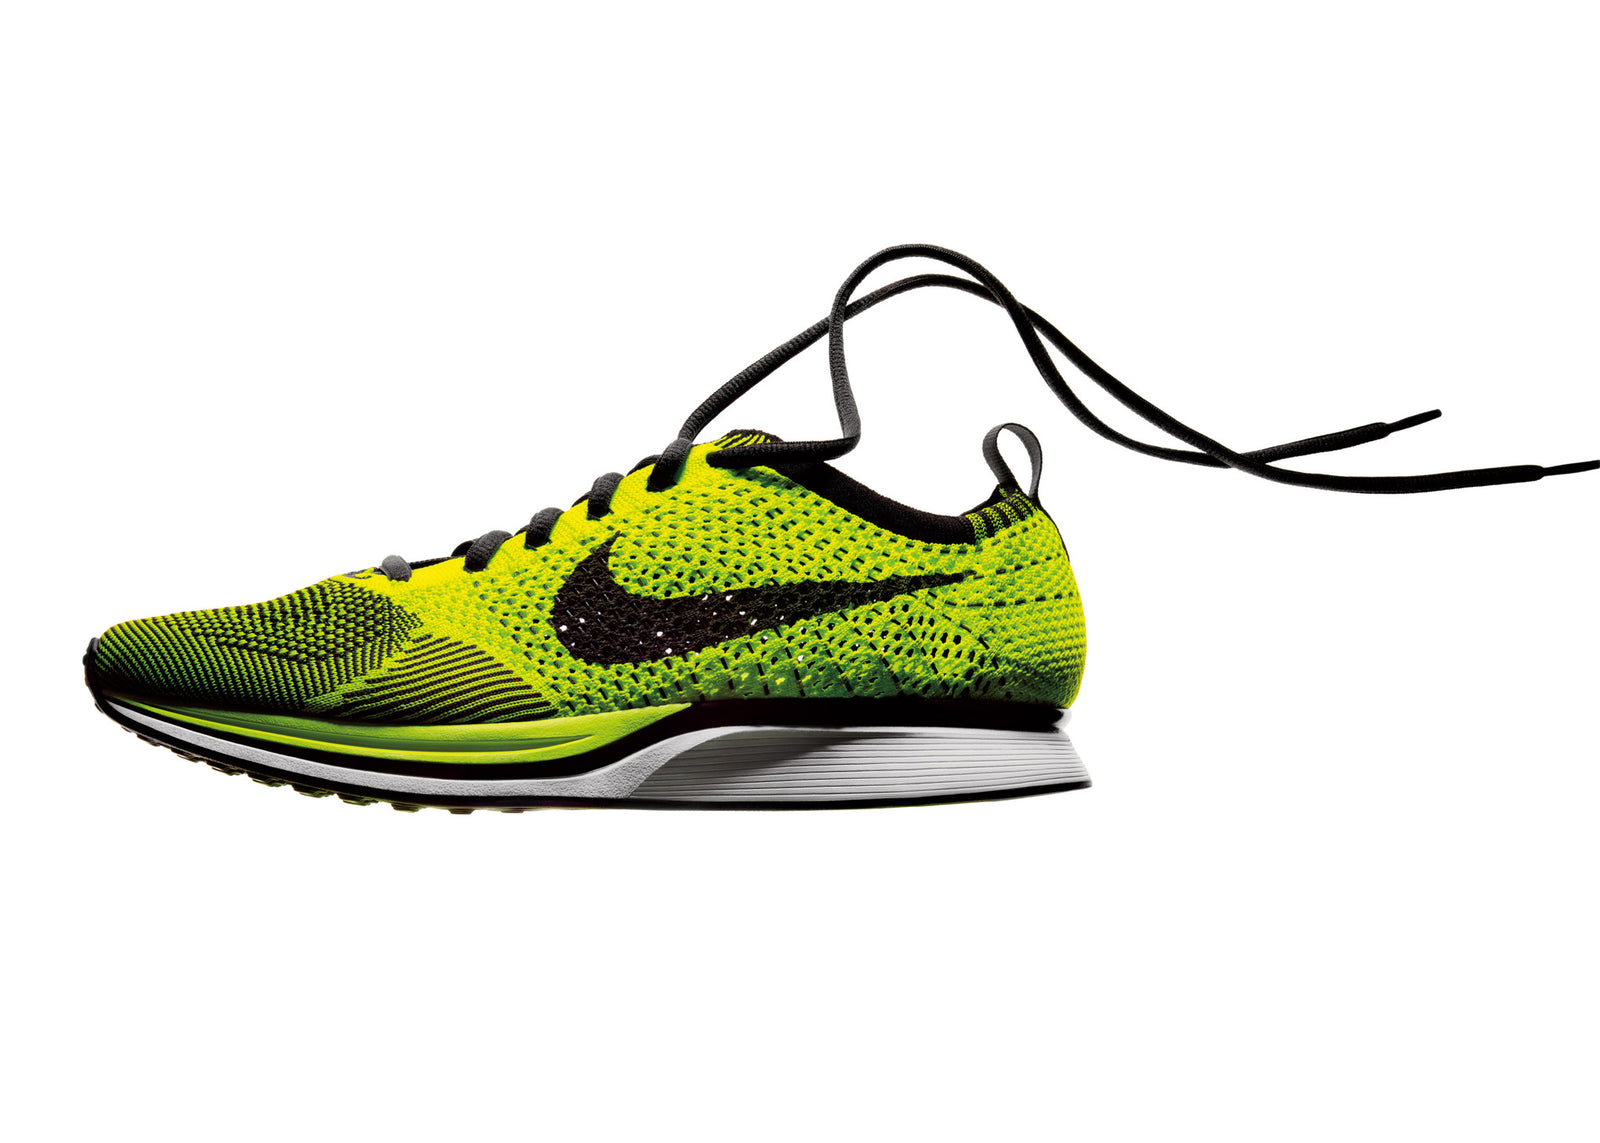 Replacement NIKE Shoe Laces : Where to